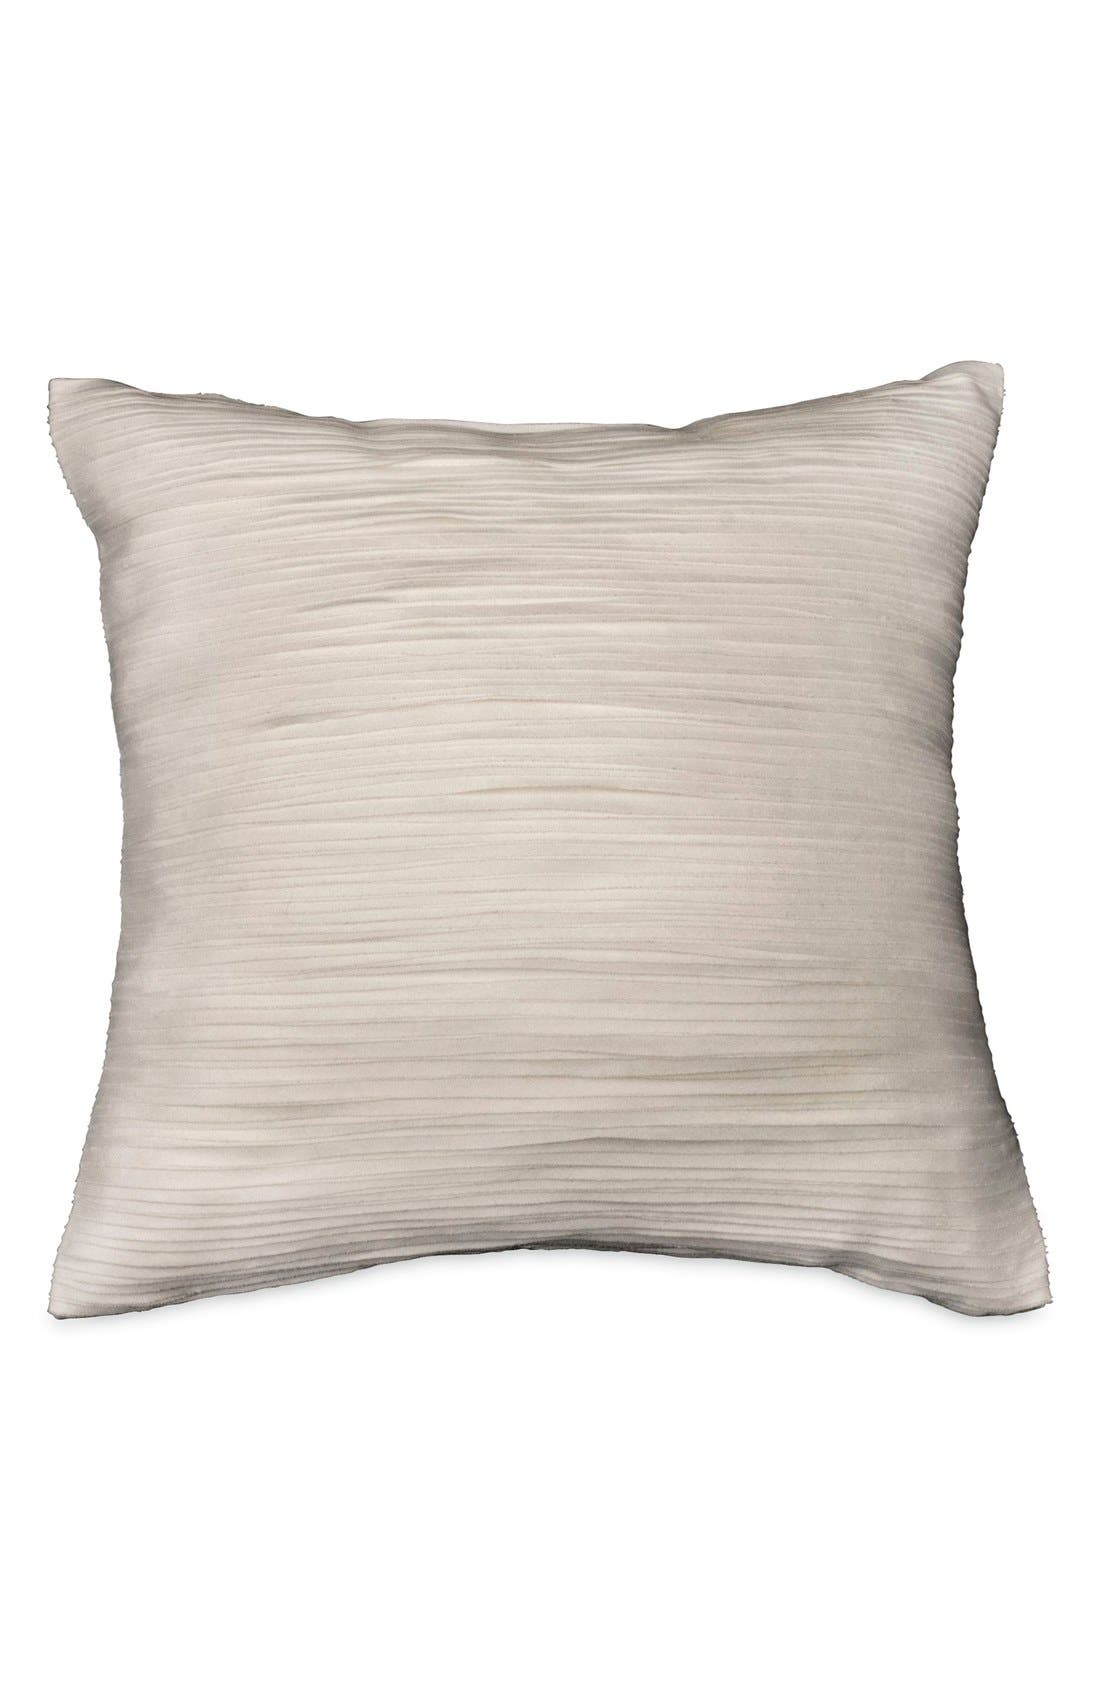 Donna Karan Collection 'Silk Essentials' Pillow,                             Main thumbnail 2, color,